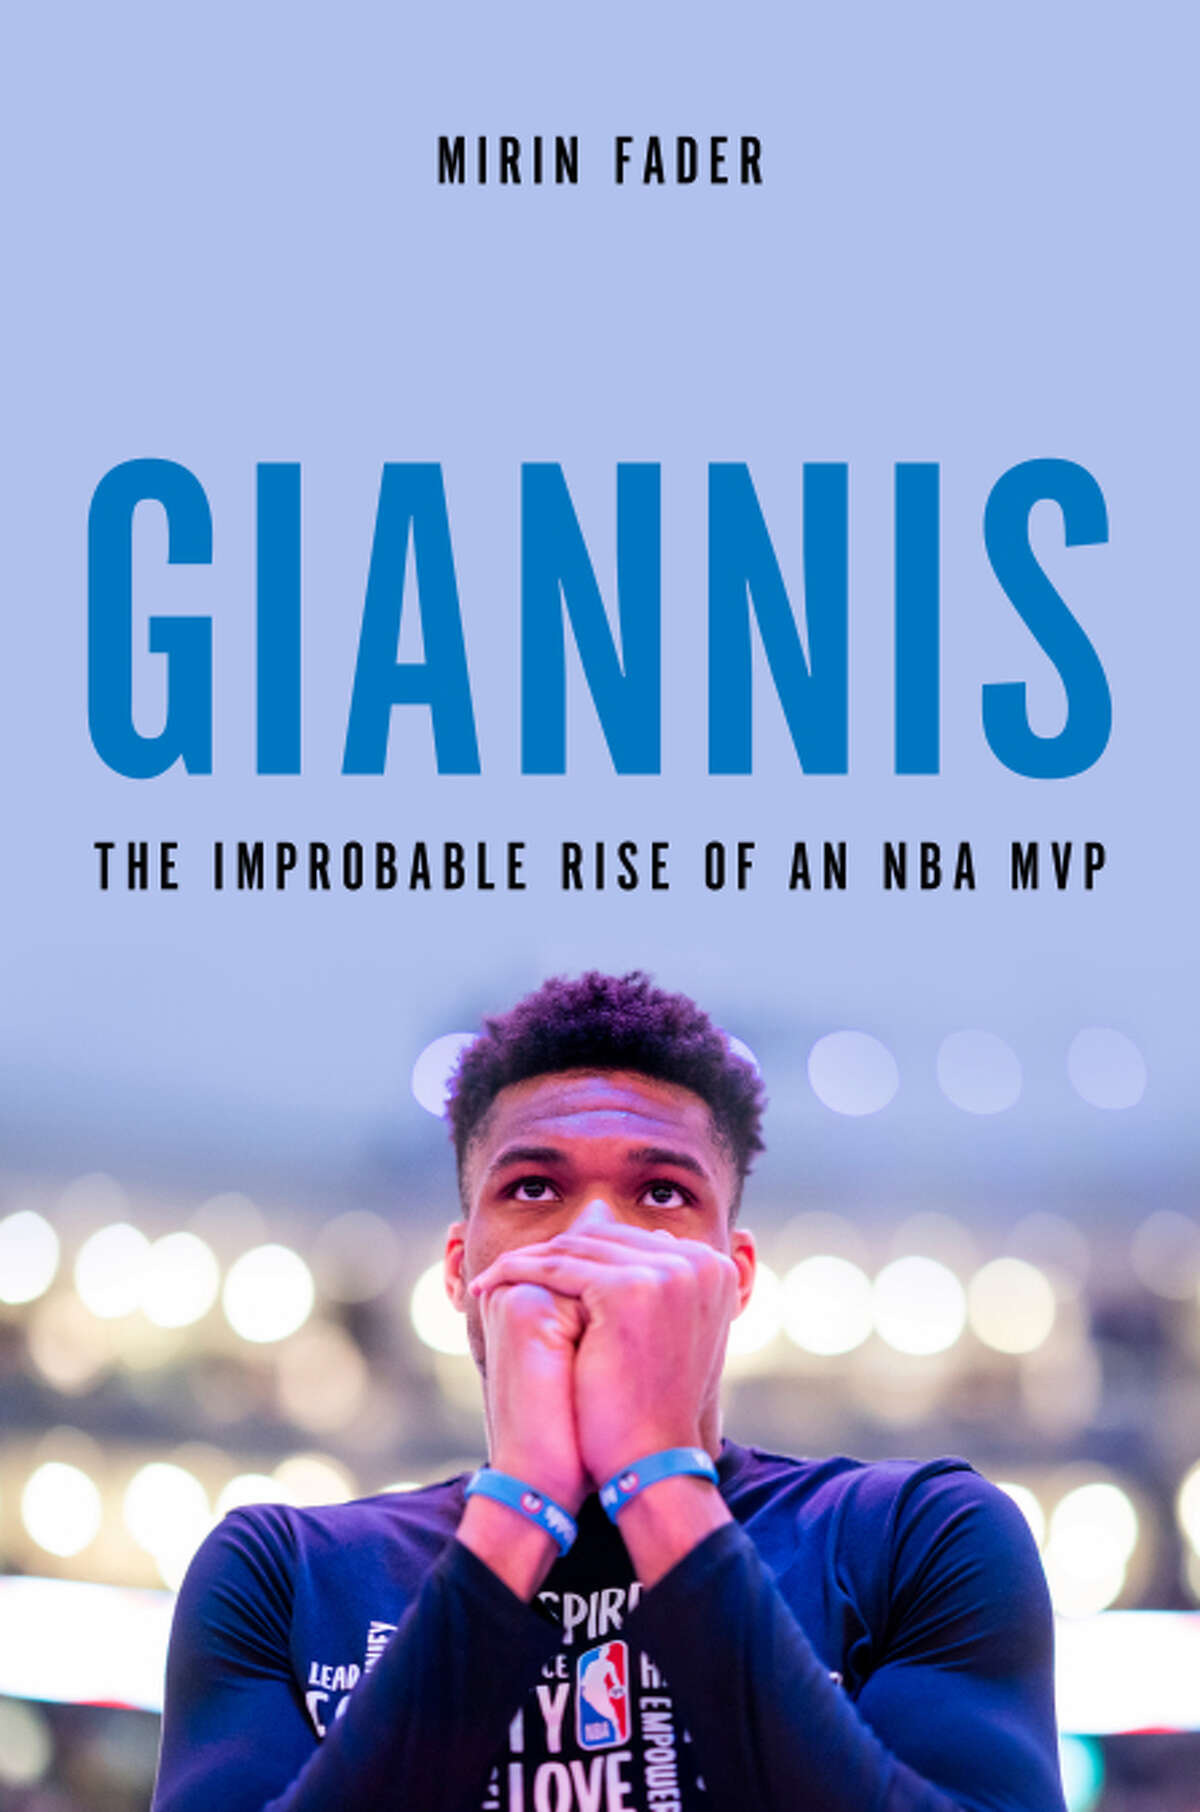 """Mirin Fader's debut book """"Giannis: The Improbable Rise of an NBA MVP"""" was released by Hachette Books on Tuesday."""